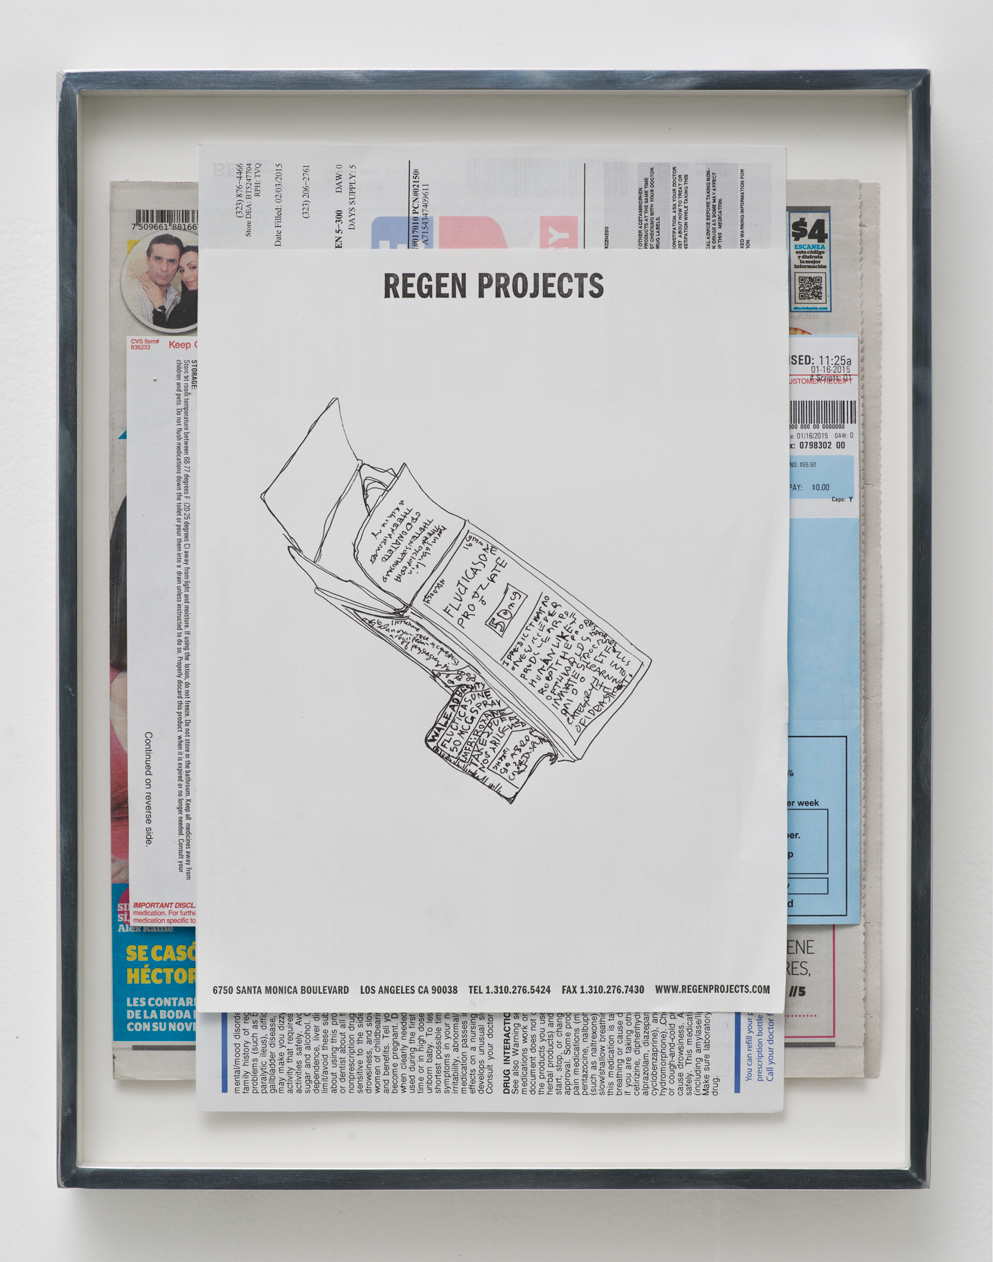 Fluticasone Propionate, 50 mcg, Spray, Boehringer Ingelheim, Roxane Laboratories, Inc.: Regen Projects, Los Angeles, California, Febraury 7, 2015   2015  Ink on letterhead, newspaper, ink on paper  15 x 11 1/2 inches   Drawings, 2014–    Walid AlBeshti, 2015